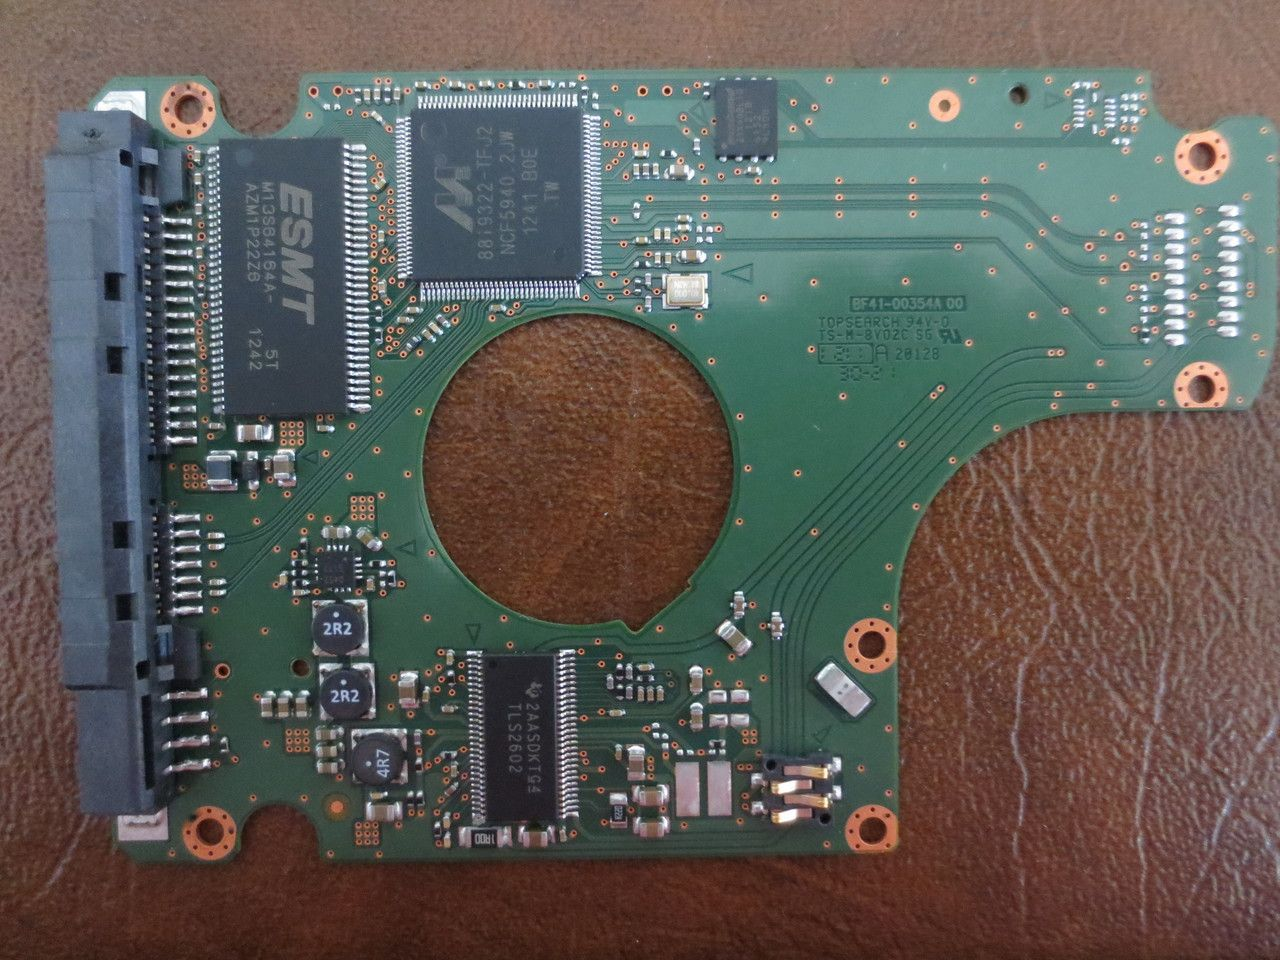 Samsung St1000lm024 Hn M101mbb Lcp Reva Fw2ar10 Hard To Make A Printed Circuit Board Using Diode Laser With 3d Printer Fw2ar10001 Bf41